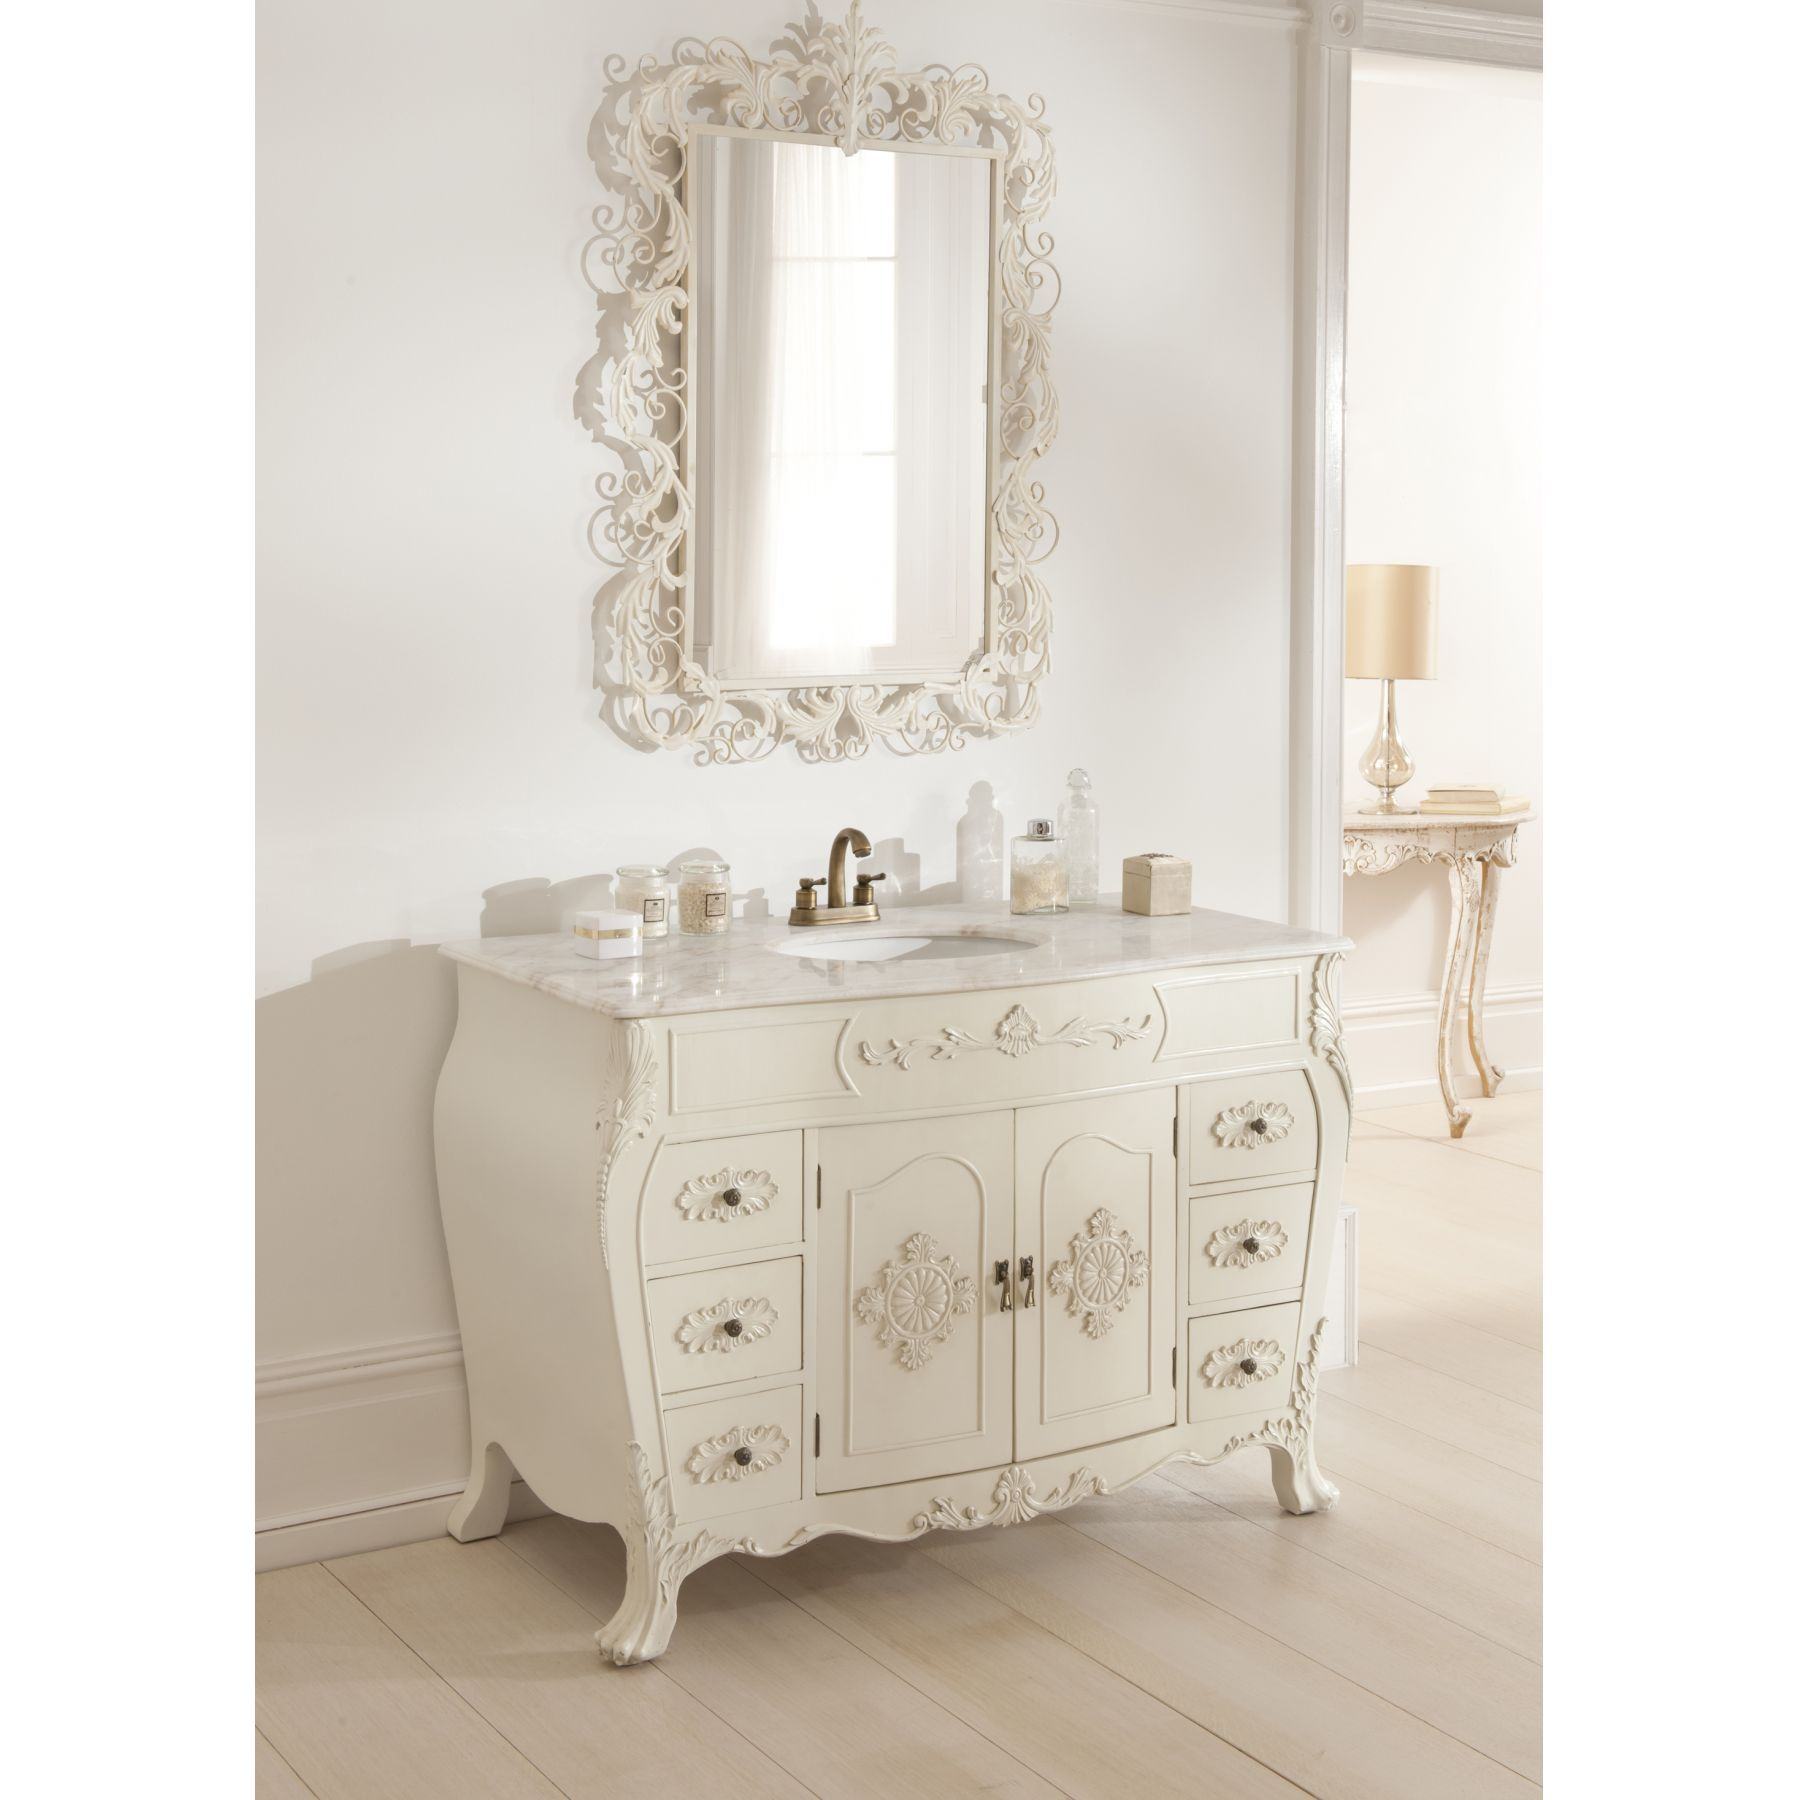 This shabby chic sink with an ornate mirror above creates an